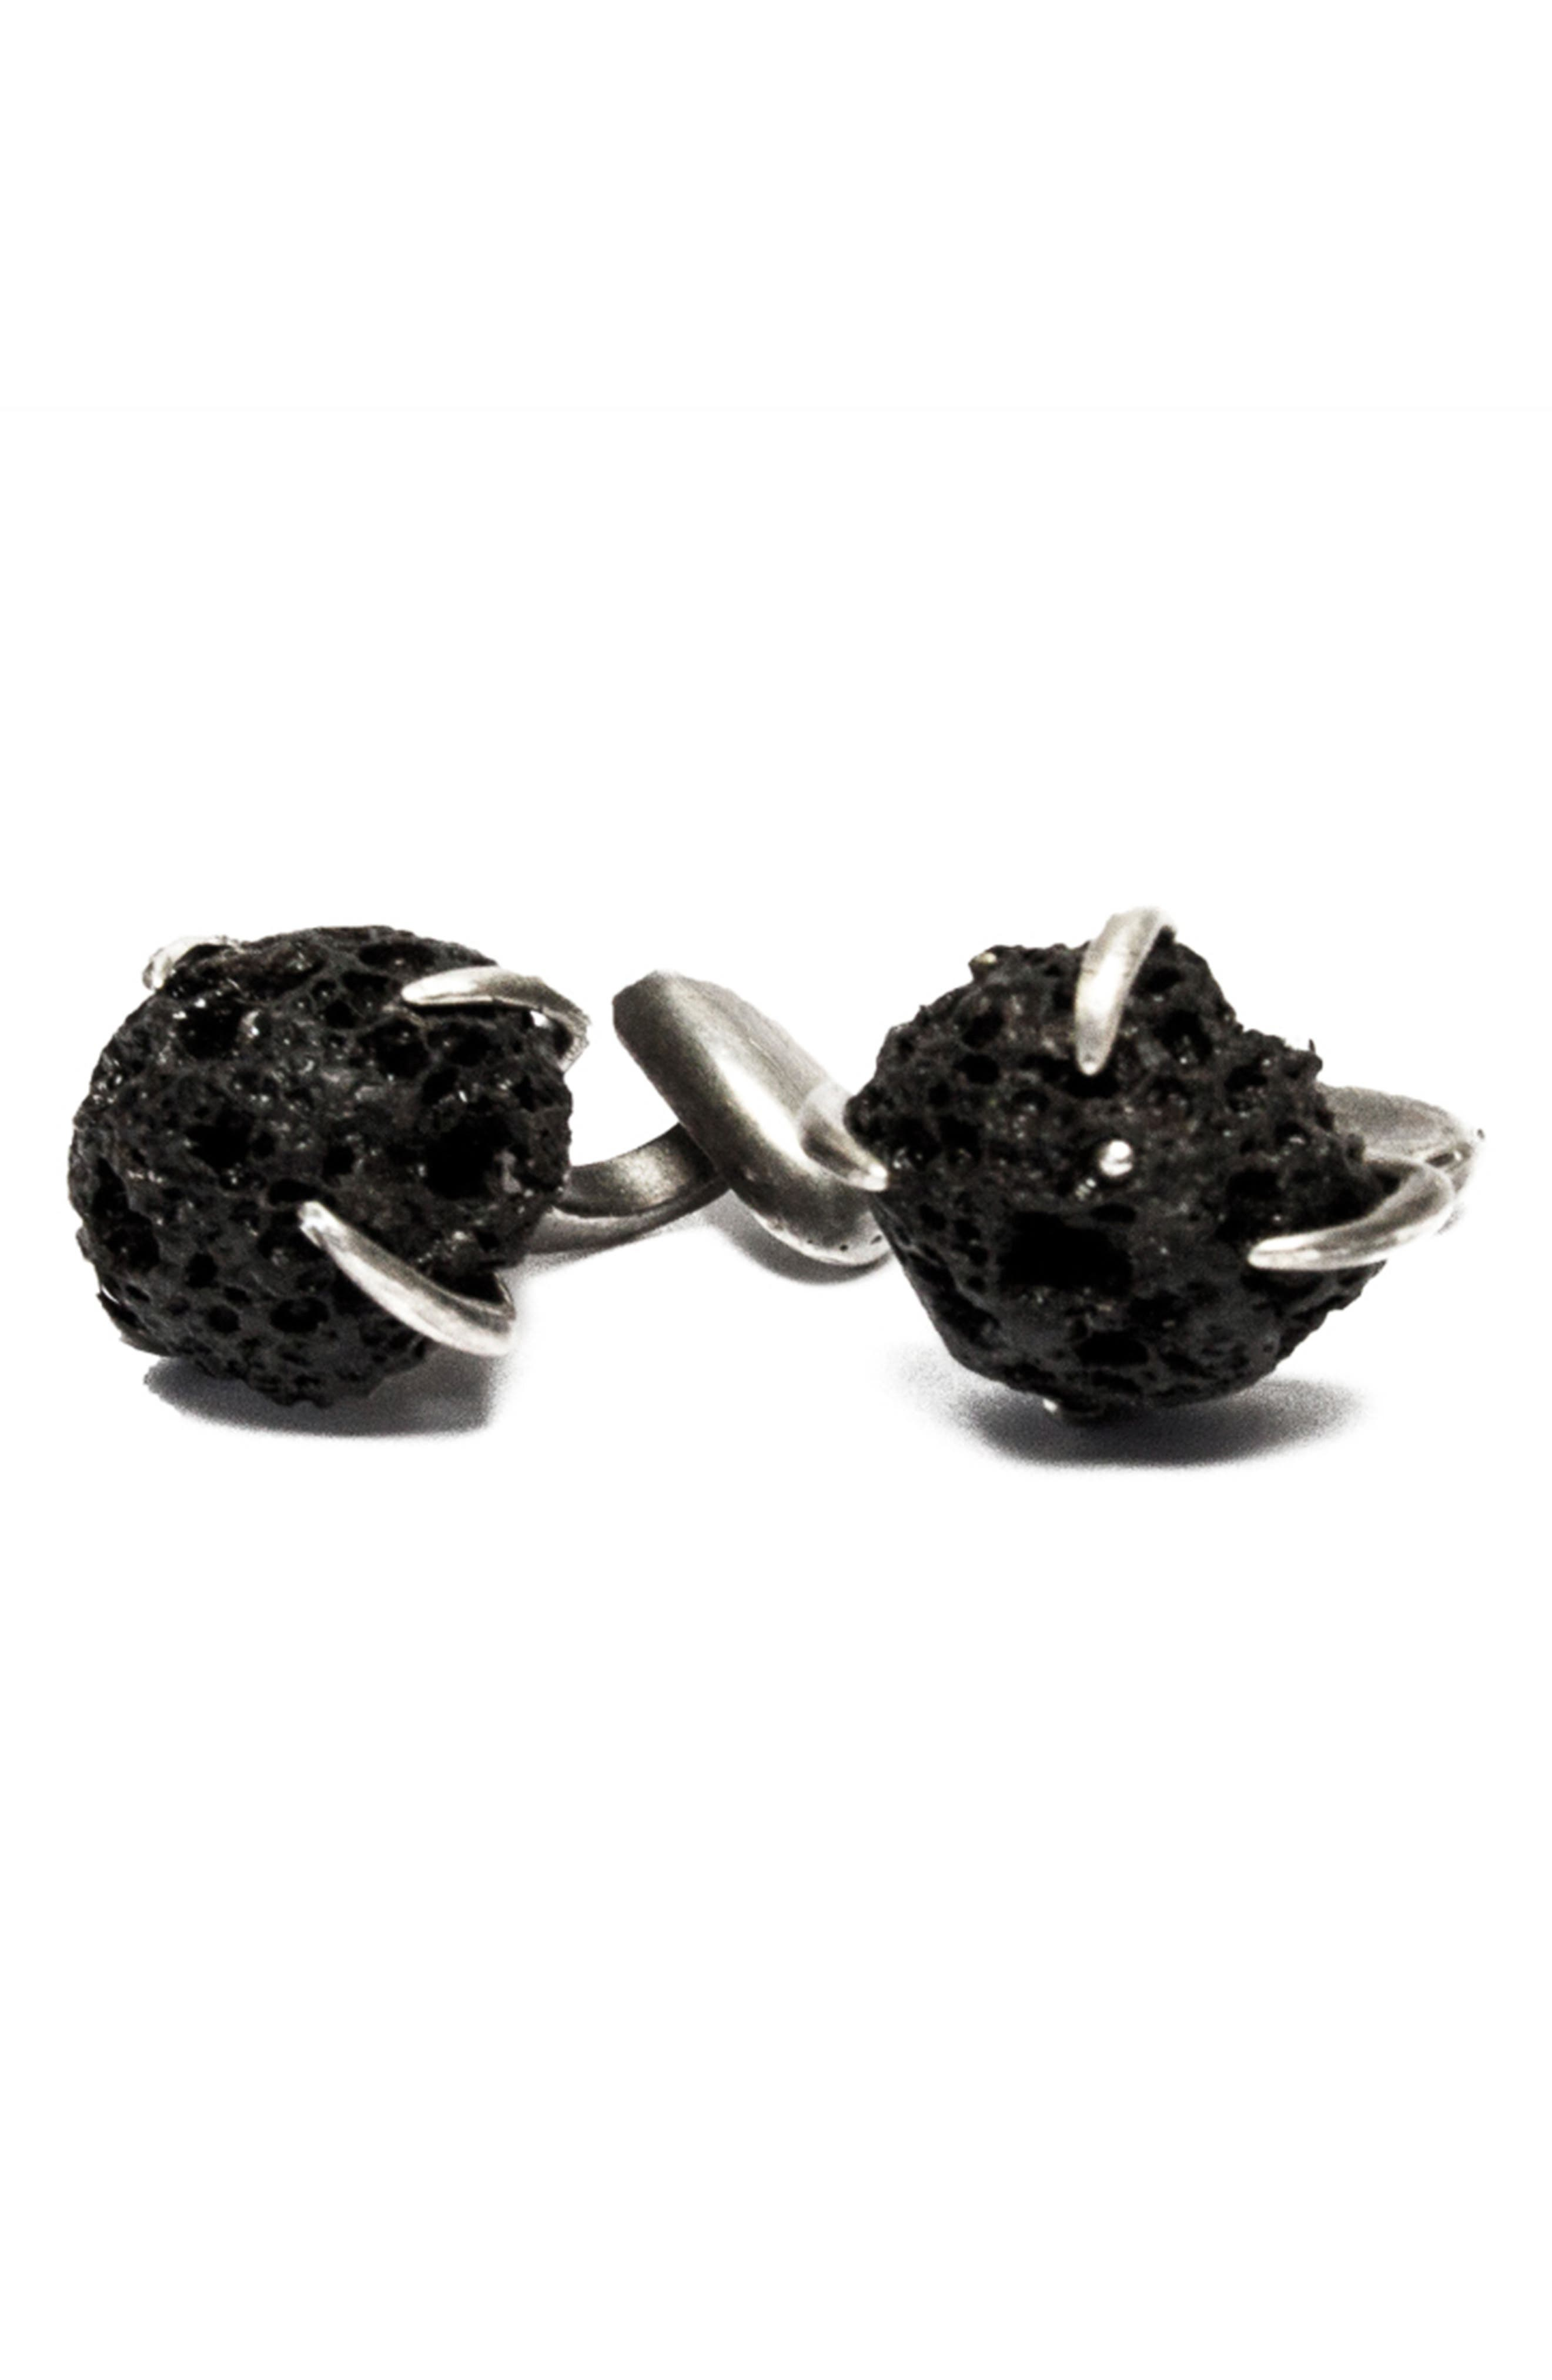 Volcanic Stones Cuff Links,                         Main,                         color, 001